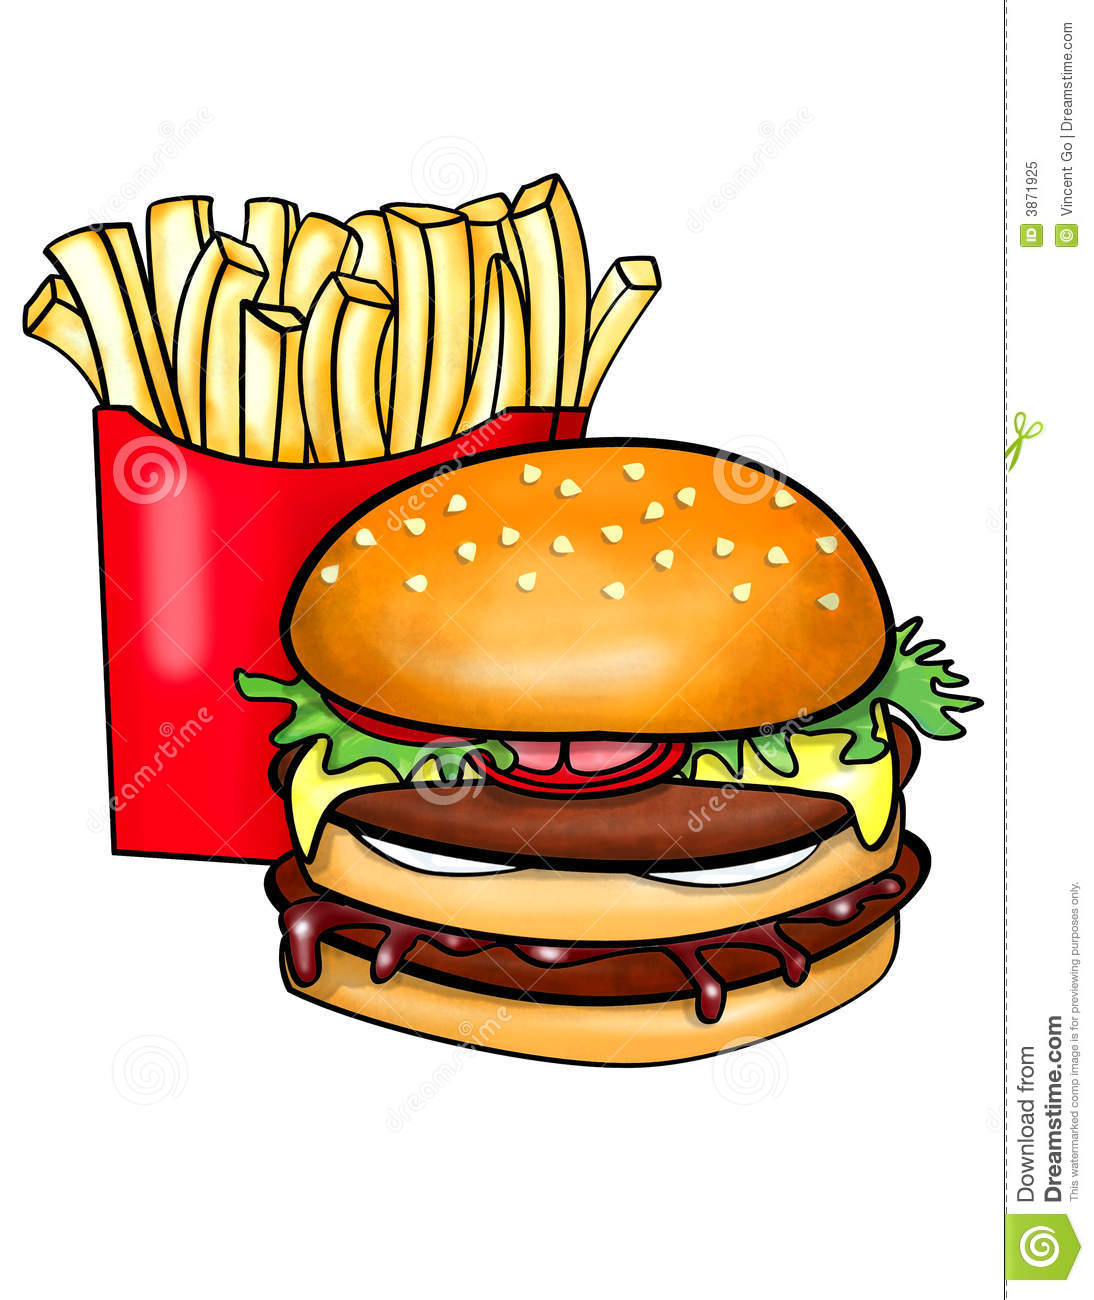 Burger and fries clipart clipart suggest for Hamburger clipart